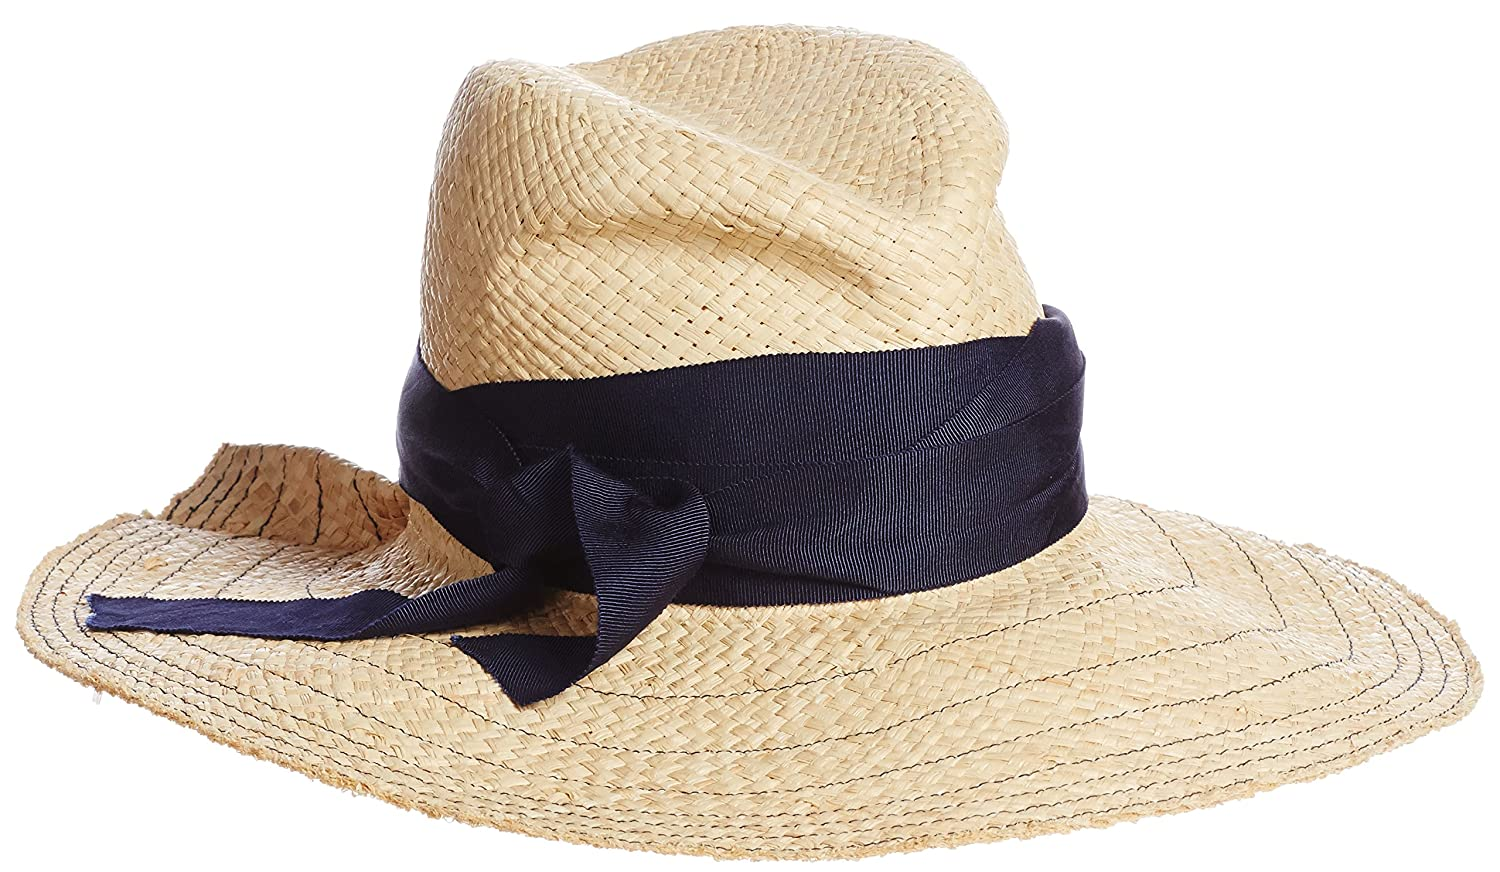 Amazon.co.jp: (ローラハット)Lola HATS(ローラハット) First AID Bis Hat 7729 Natural/NAVY 58.5cm: 服&ファッション小物通販